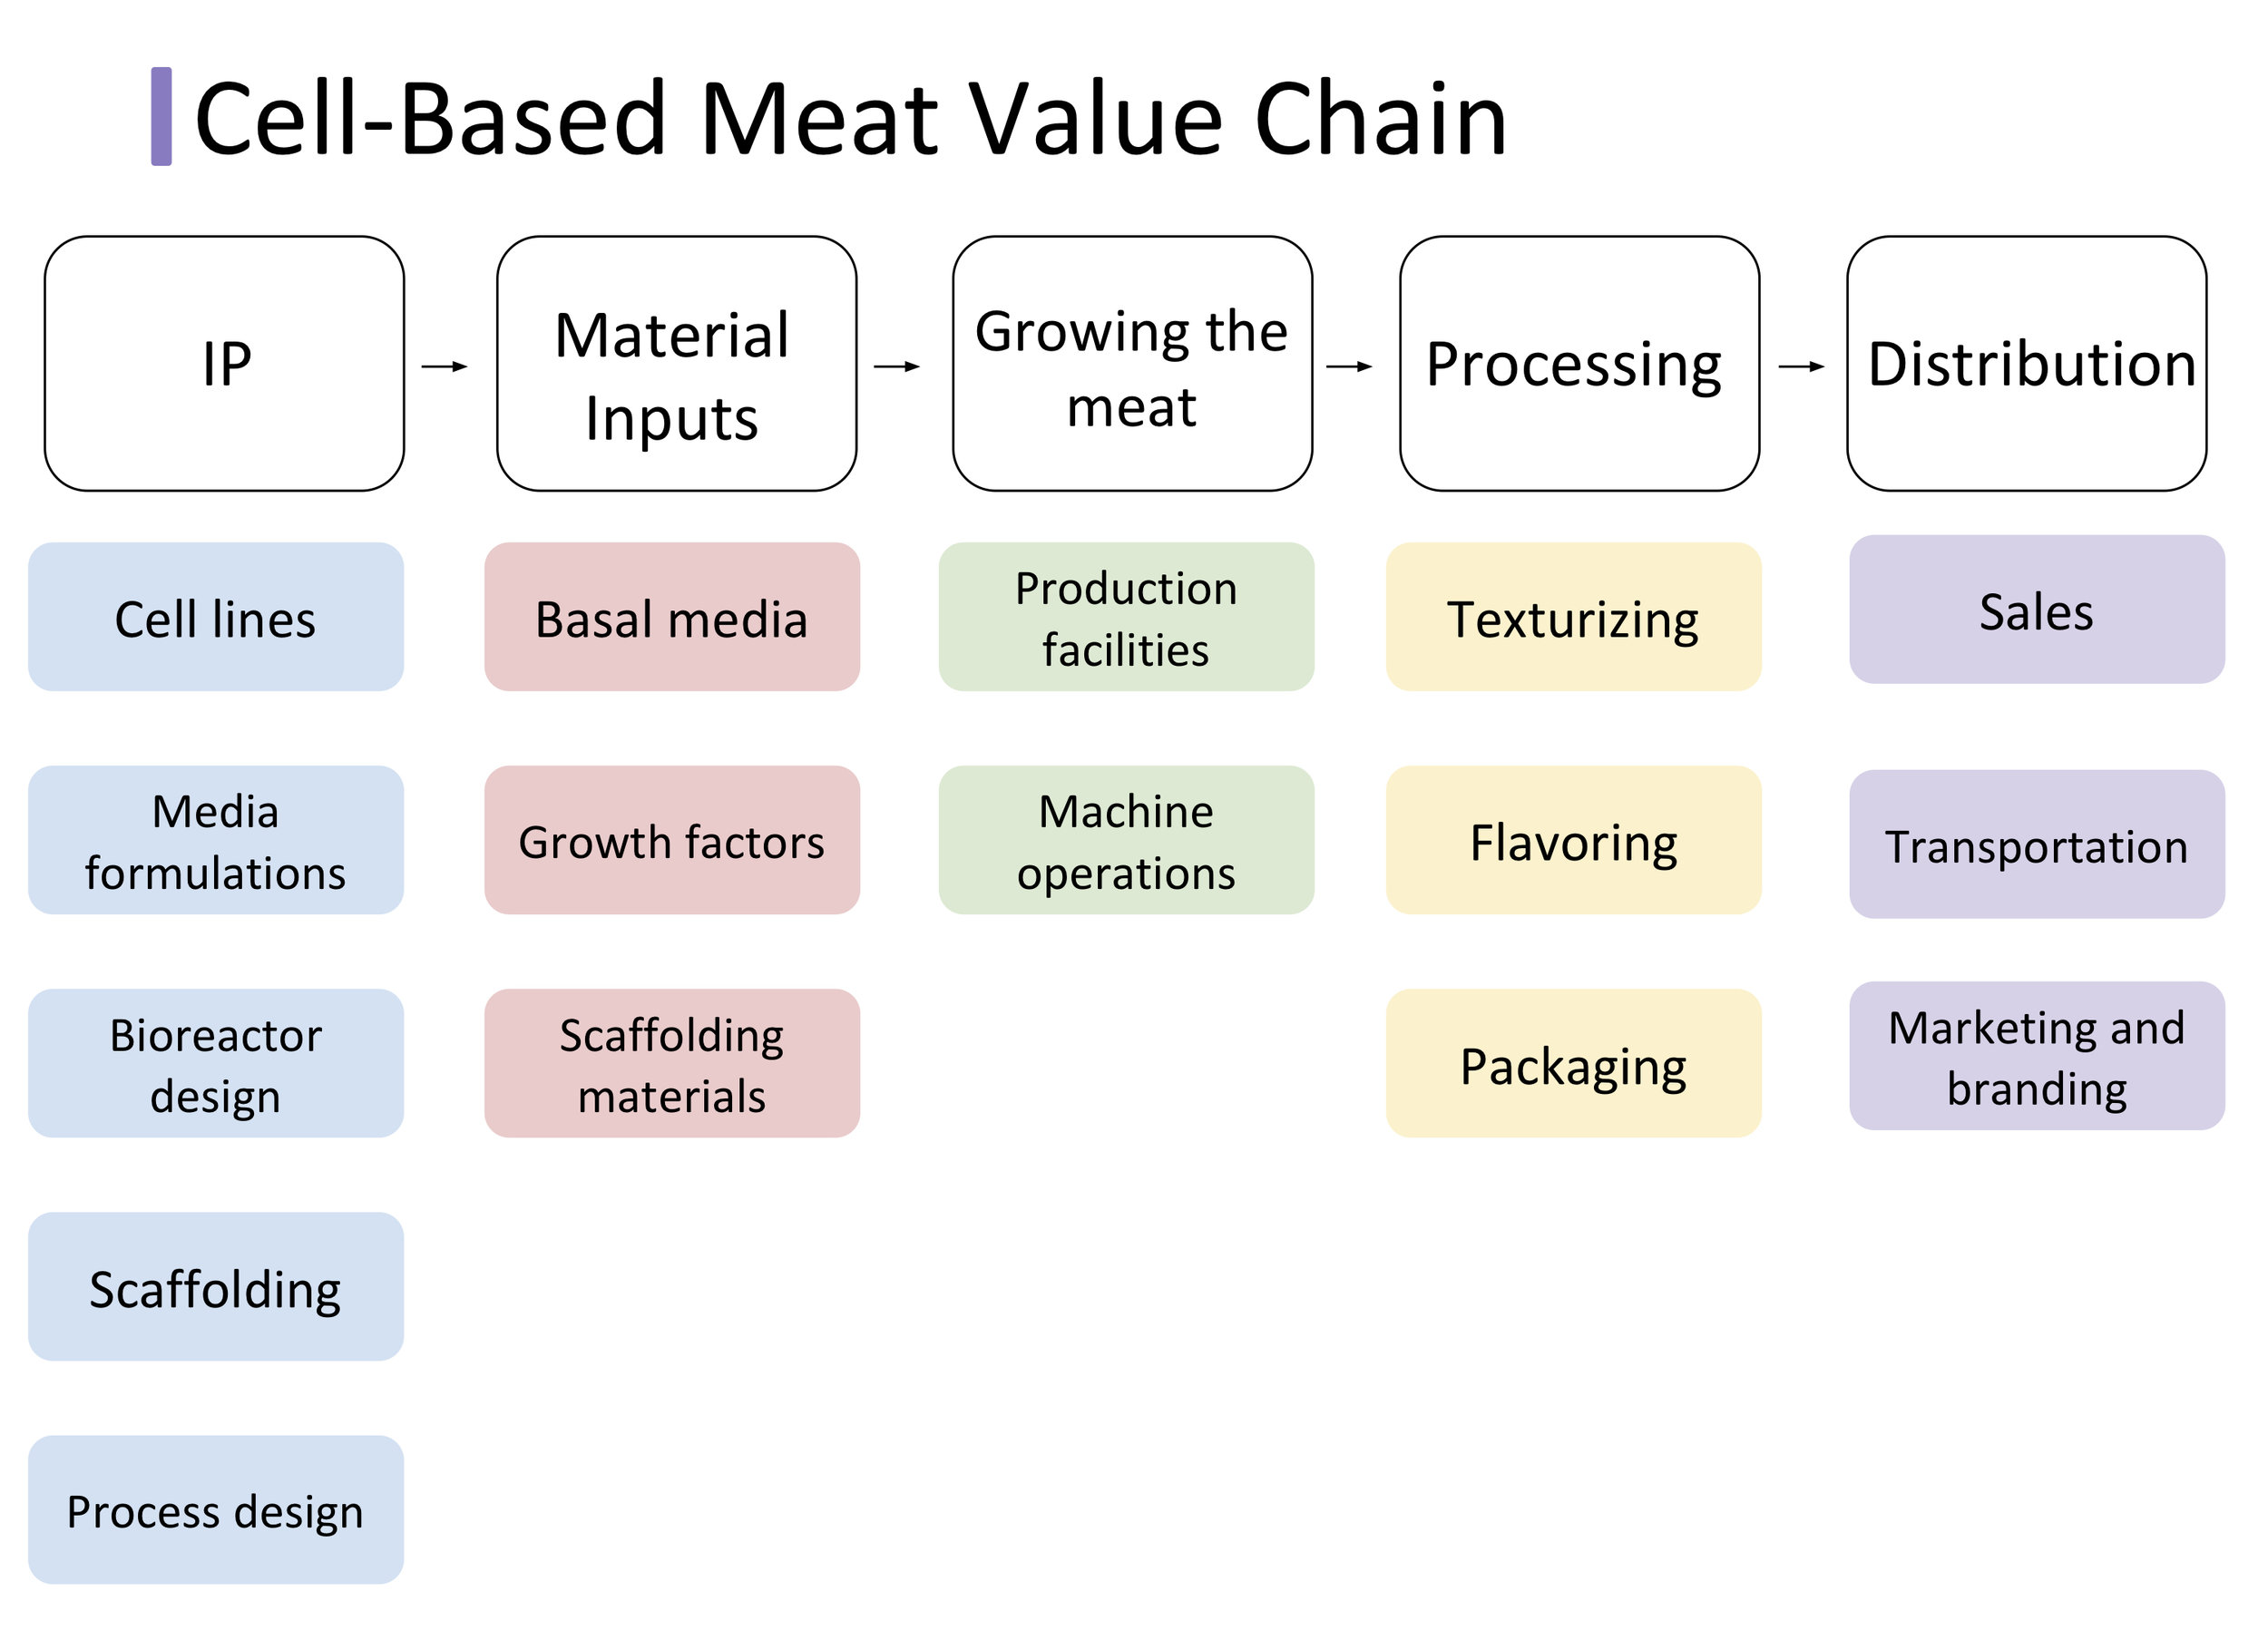 Cell-Based Meat Value Chain.jpg